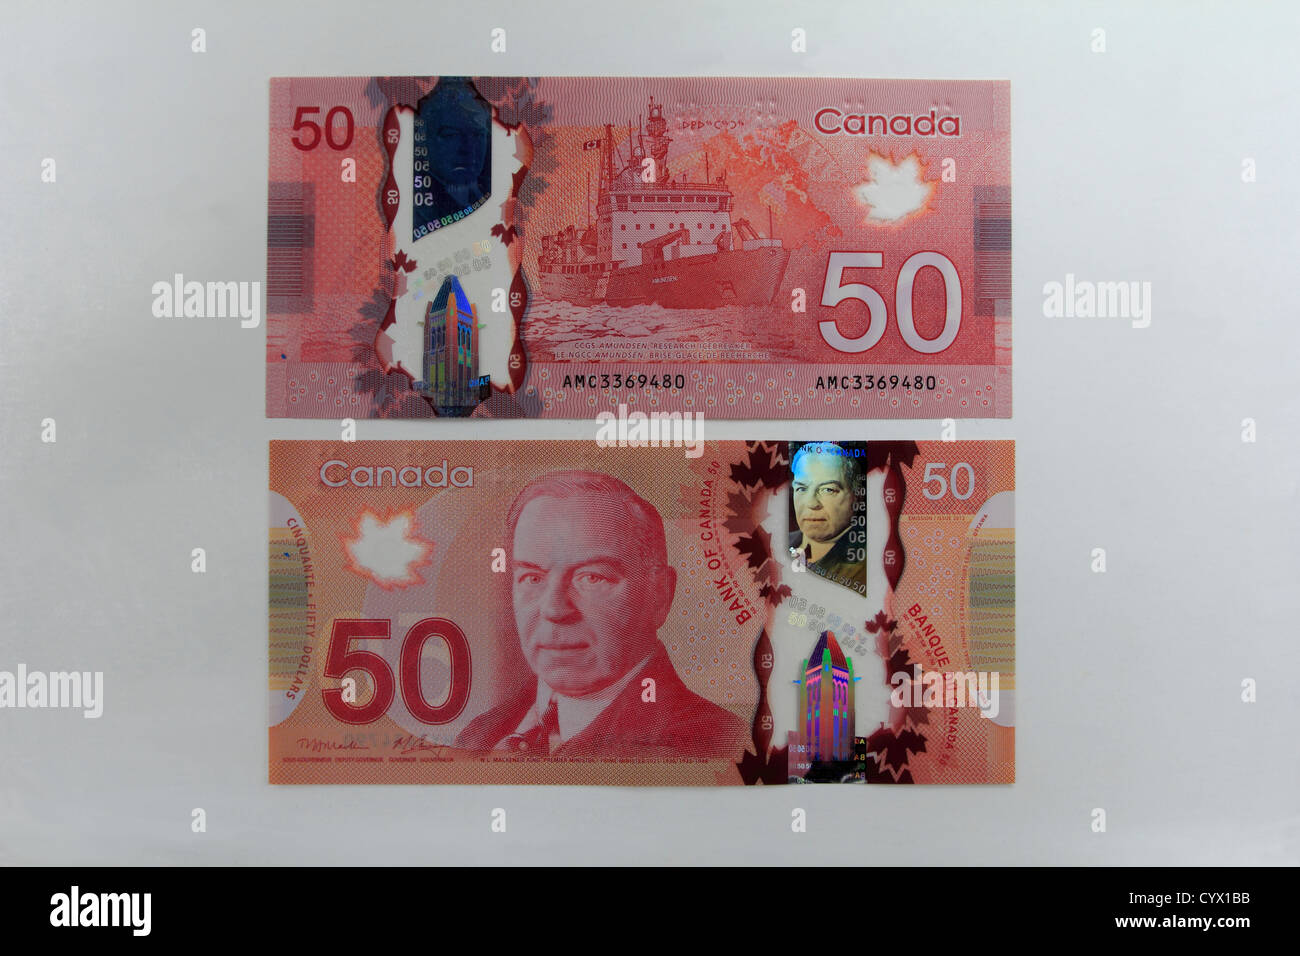 Canada's Canadian polymer plastic 50 dollar bill cash money currency showing both sides - Stock Image